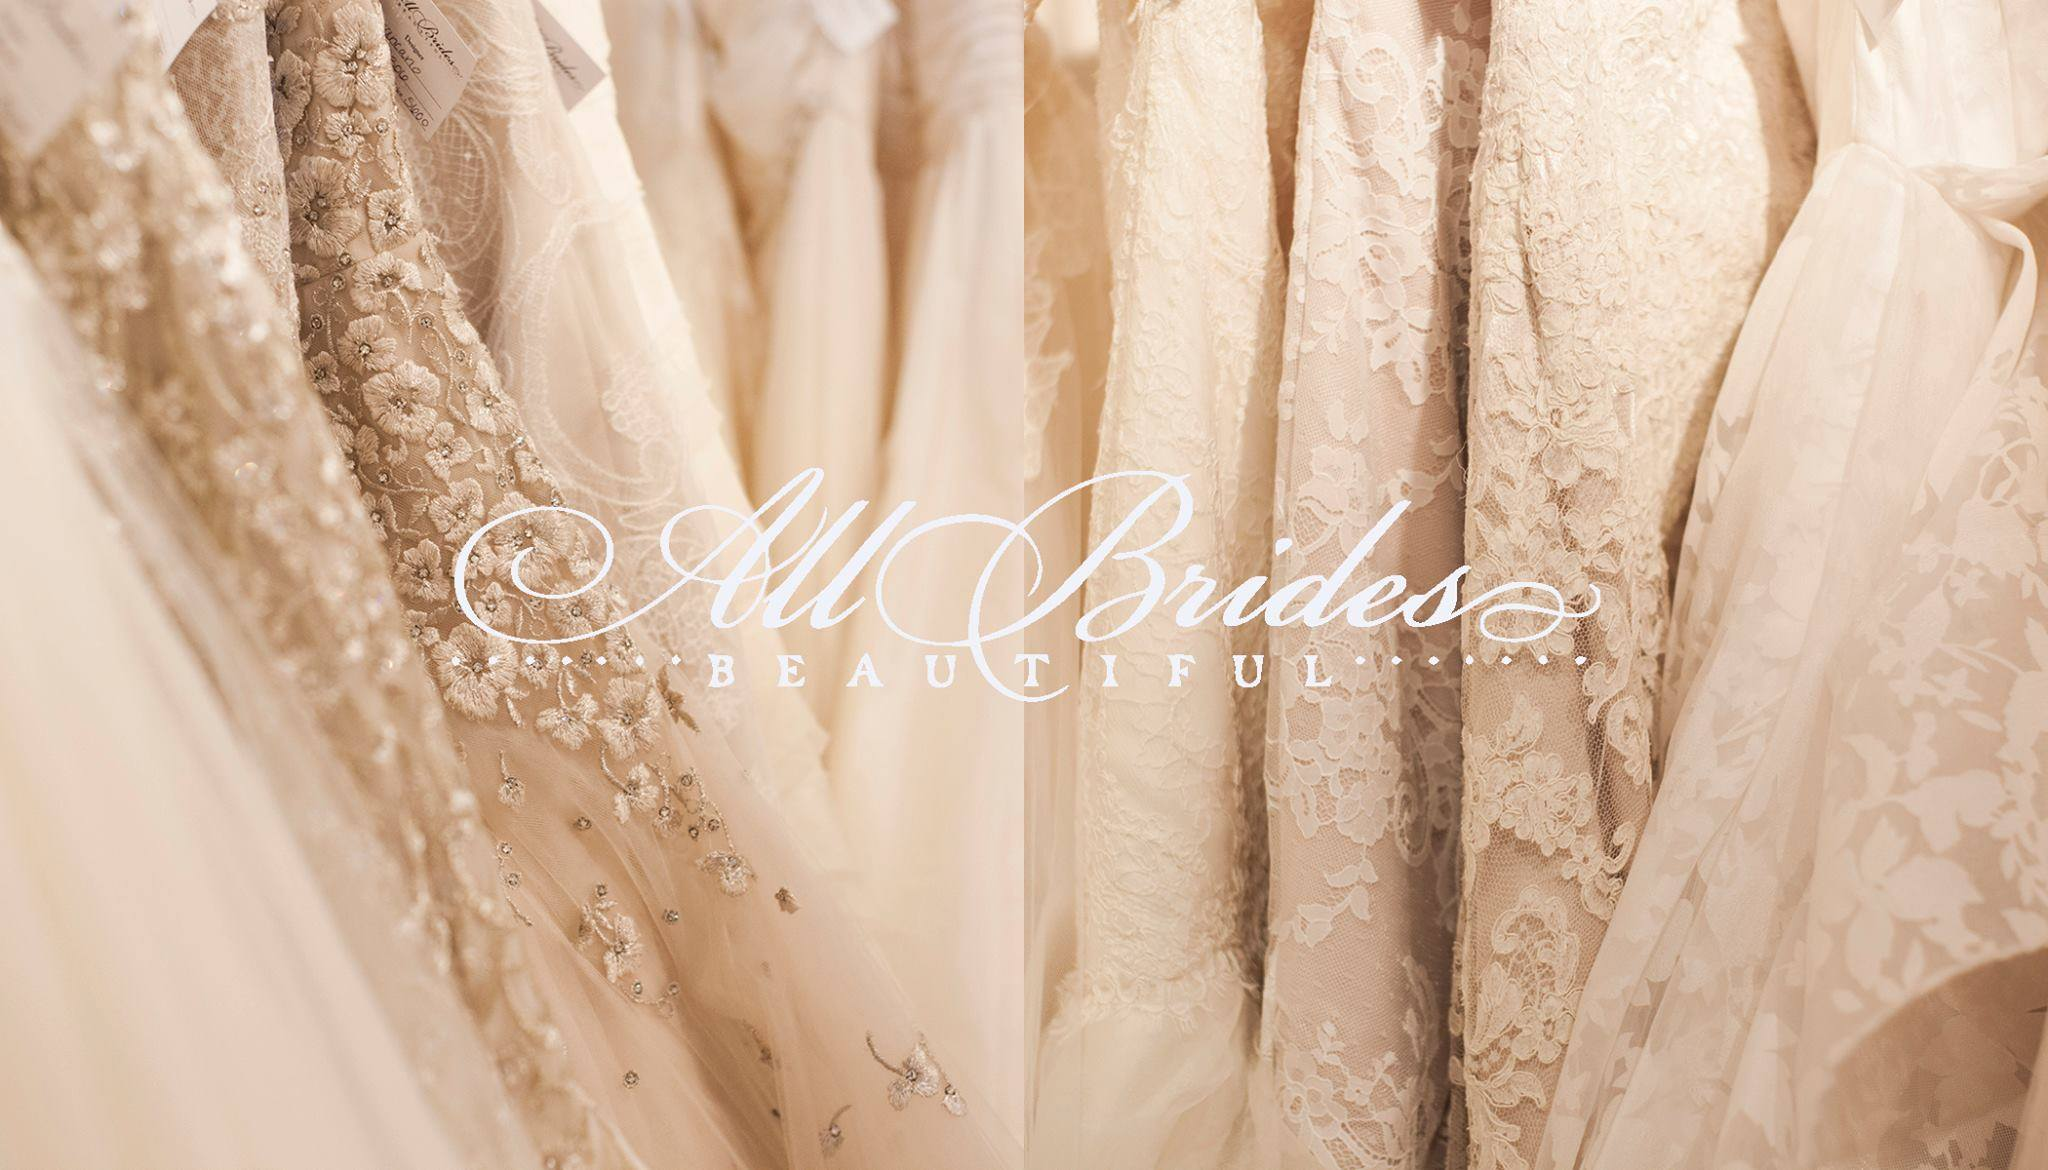 Wedding Dress Boutique Featuring Couture Gowns All Brides Beautiful